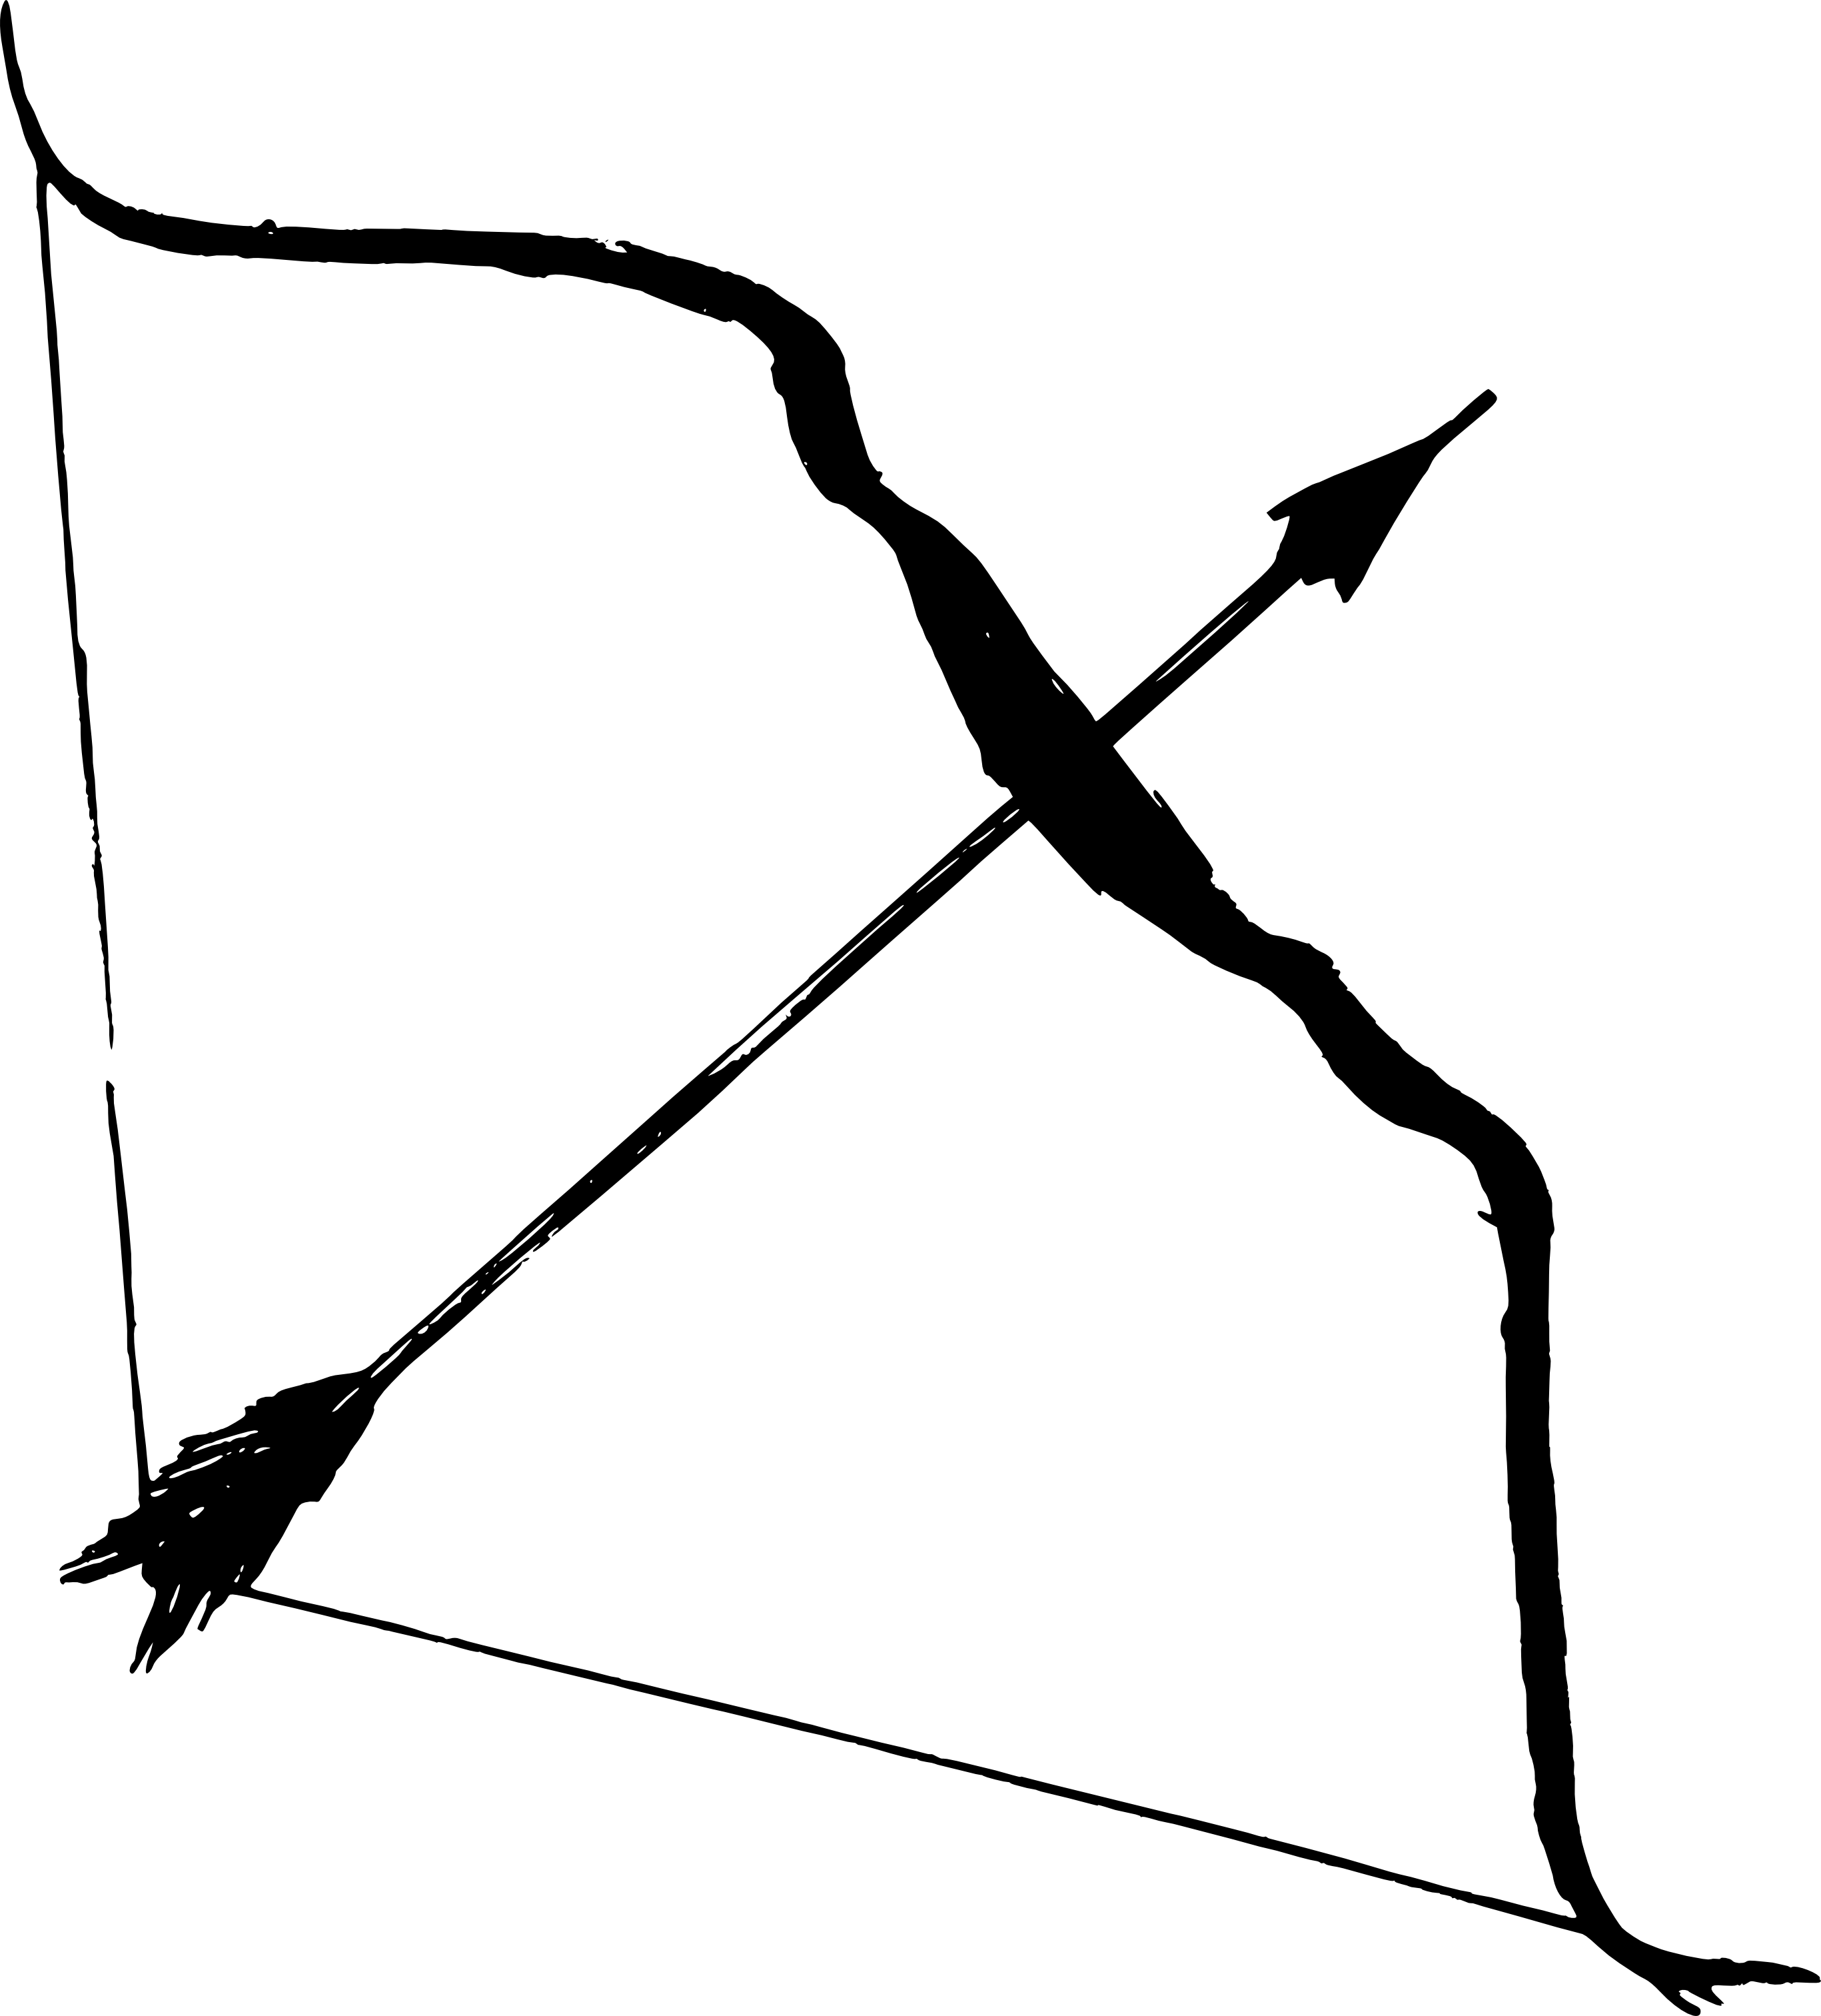 Bow And Arrow (PNG Transparent) image #44395